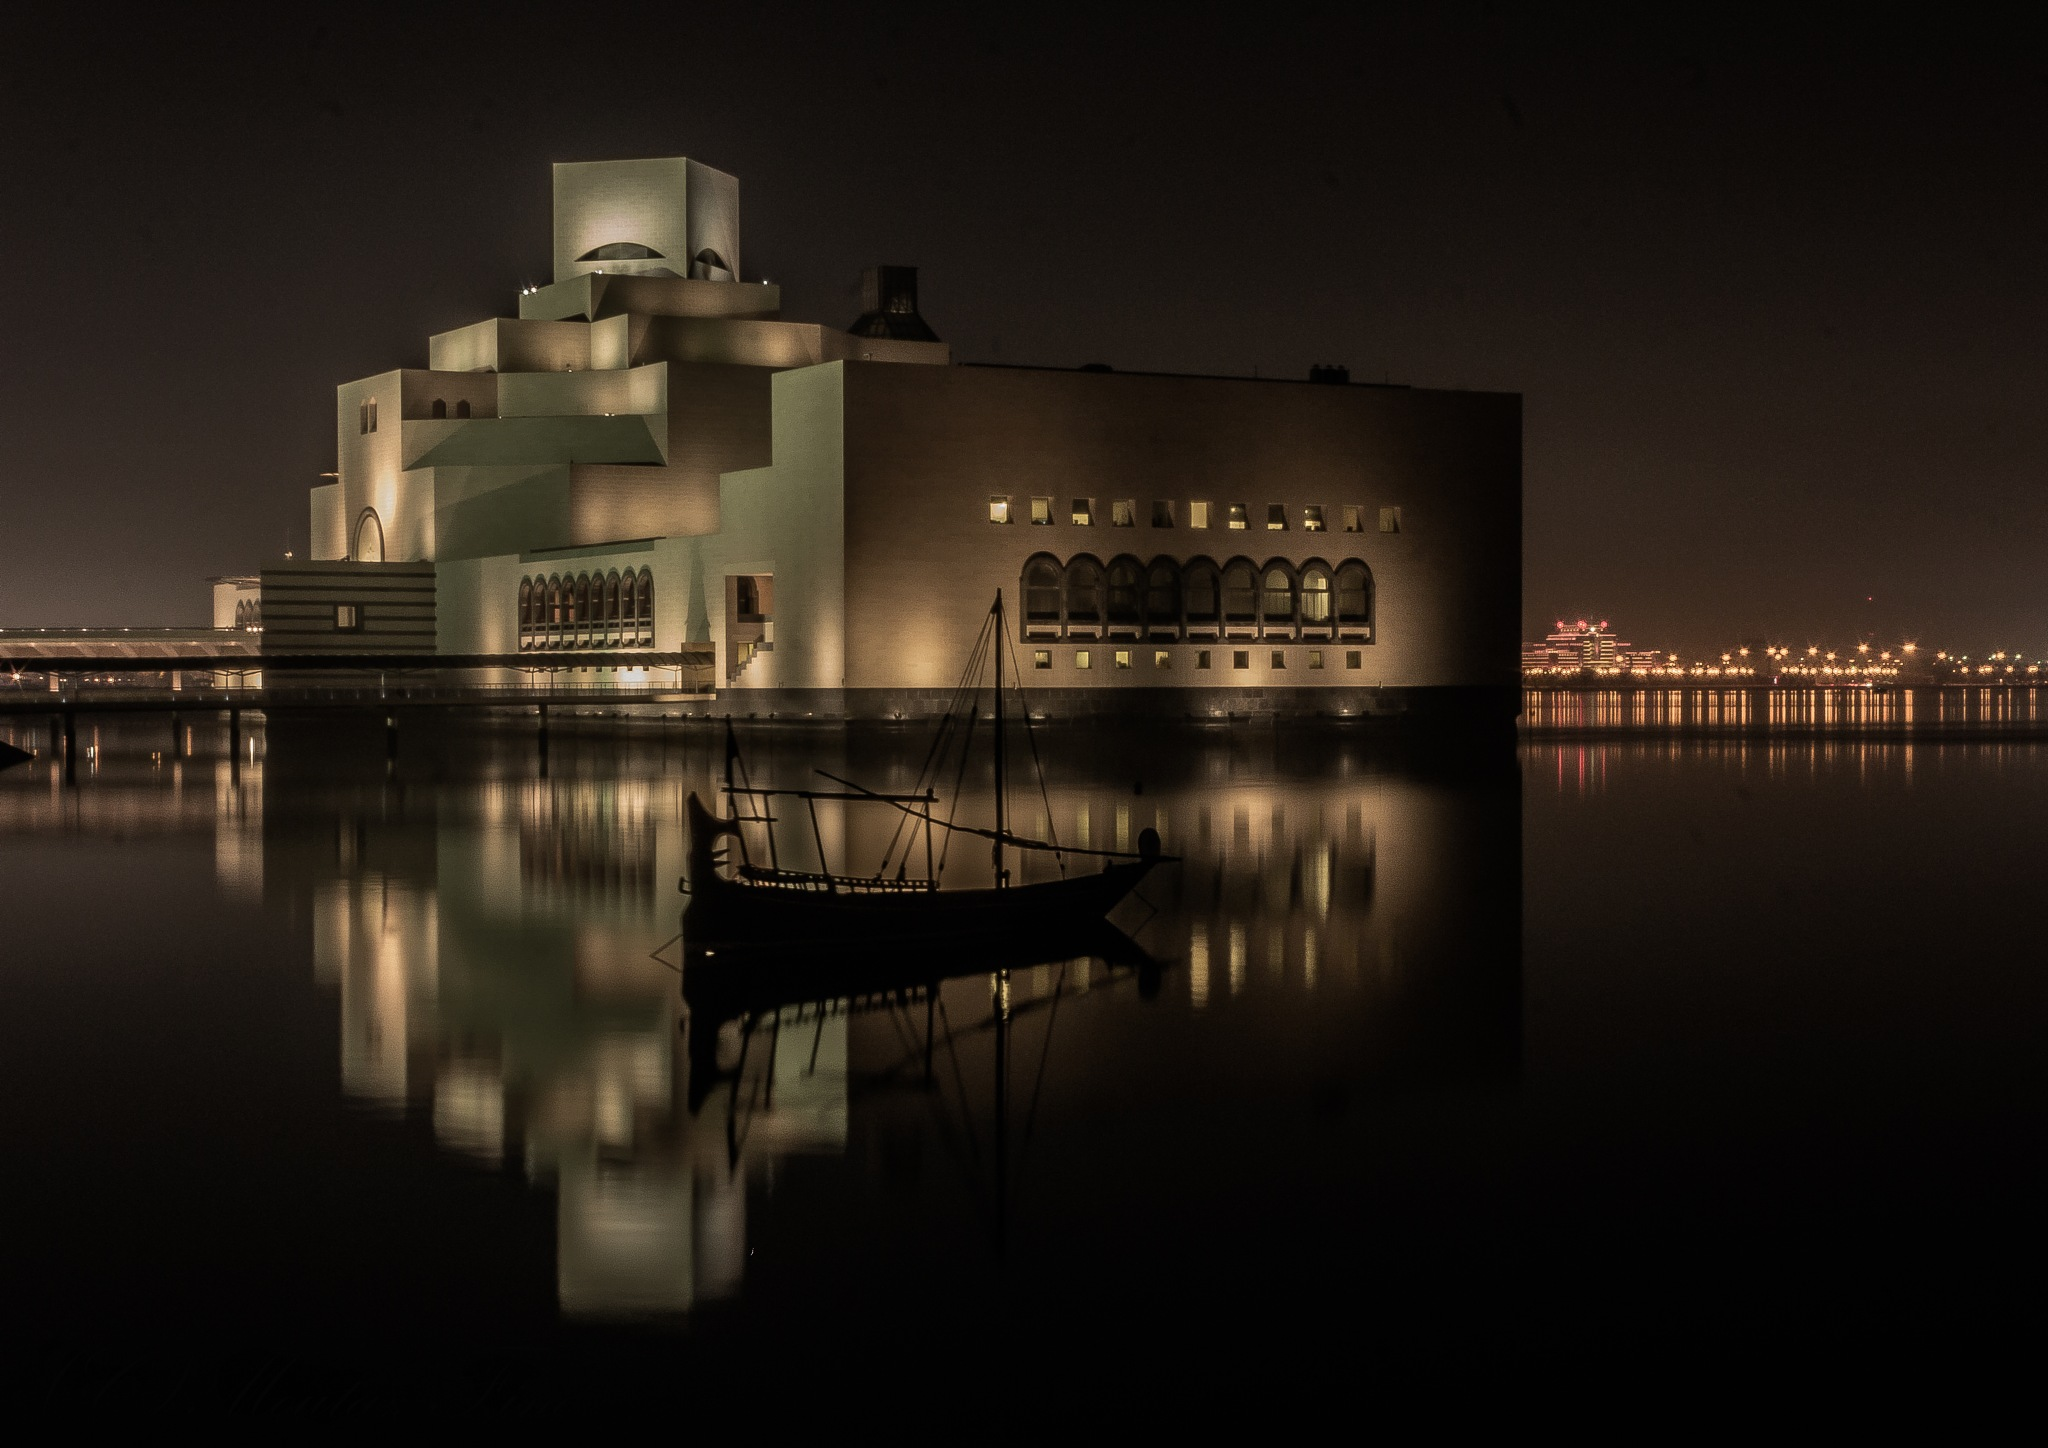 Islamic Art Museum by Moutaz Fino